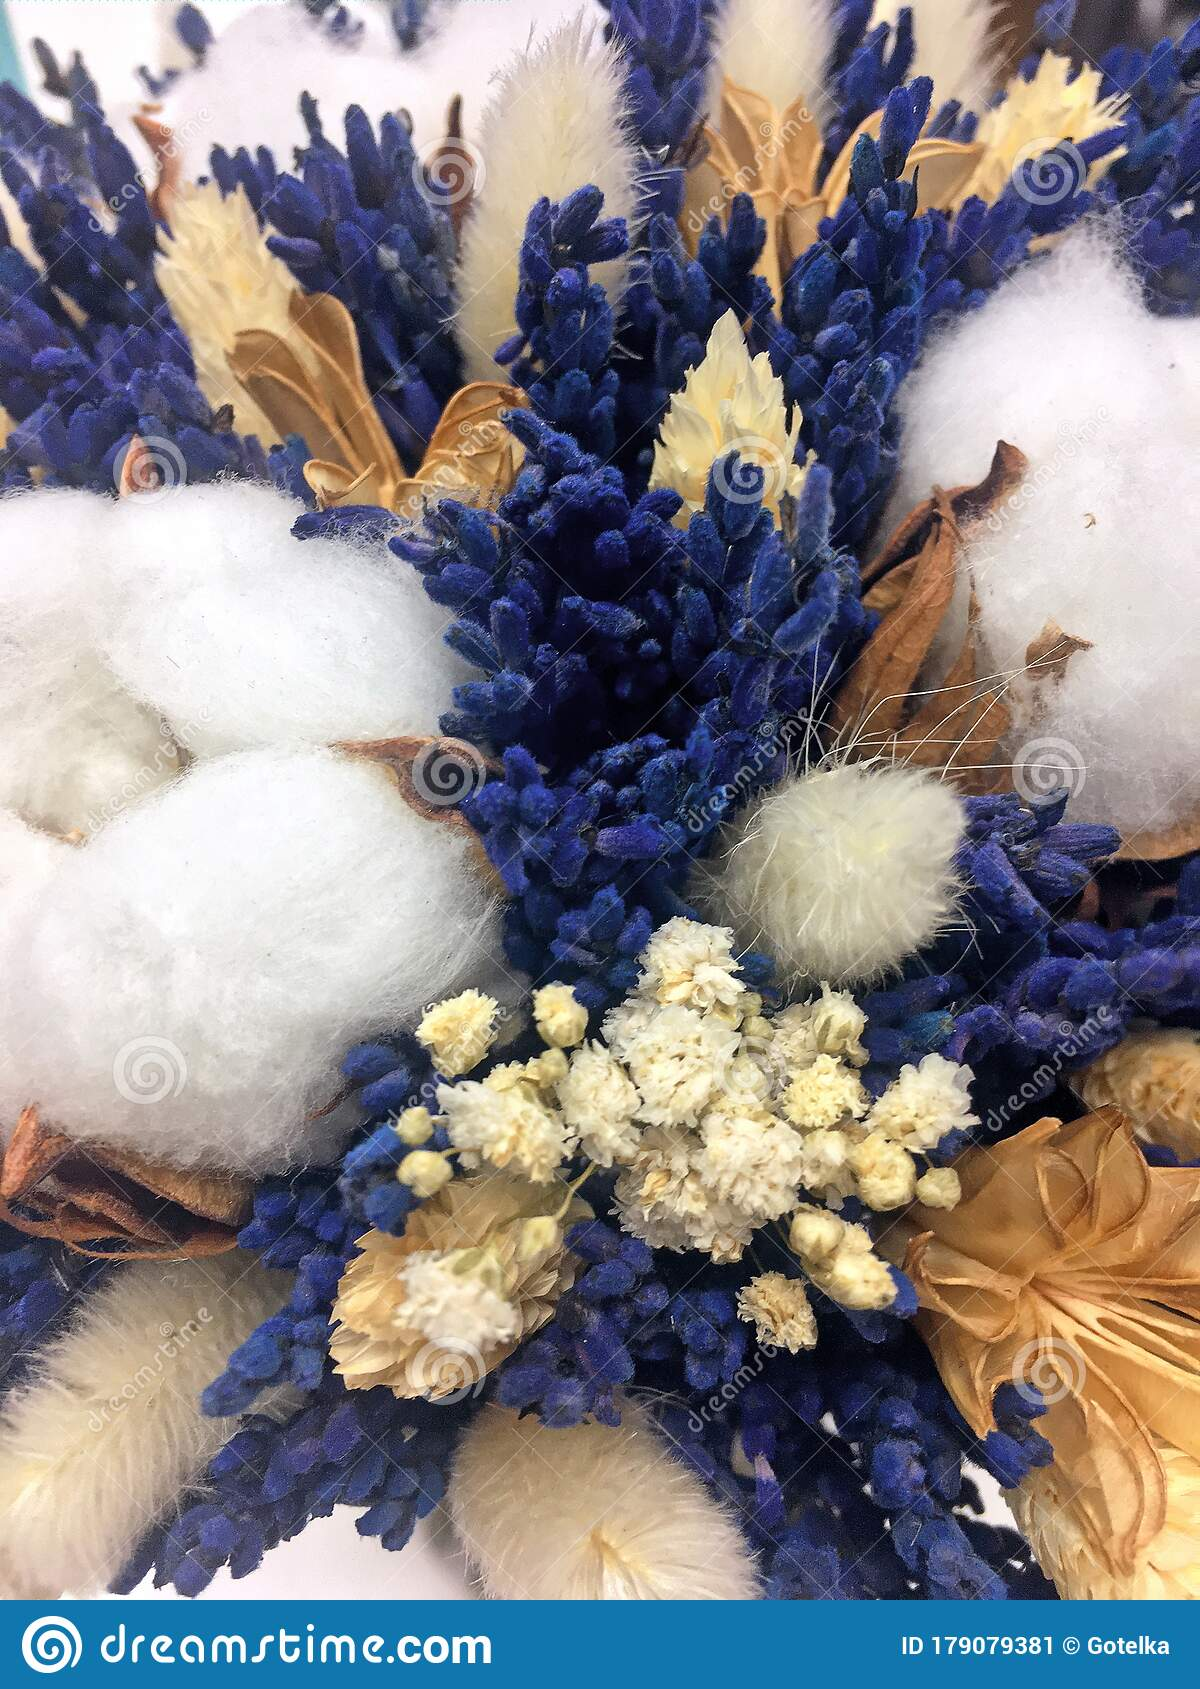 Lavender And Cotton Background Of Cozy Flowers Bouquet Of Dried Flowers Of Cotton Gypsophila Wheat And Lagurus Stock Image Image Of Fabric Fragrance 179079381